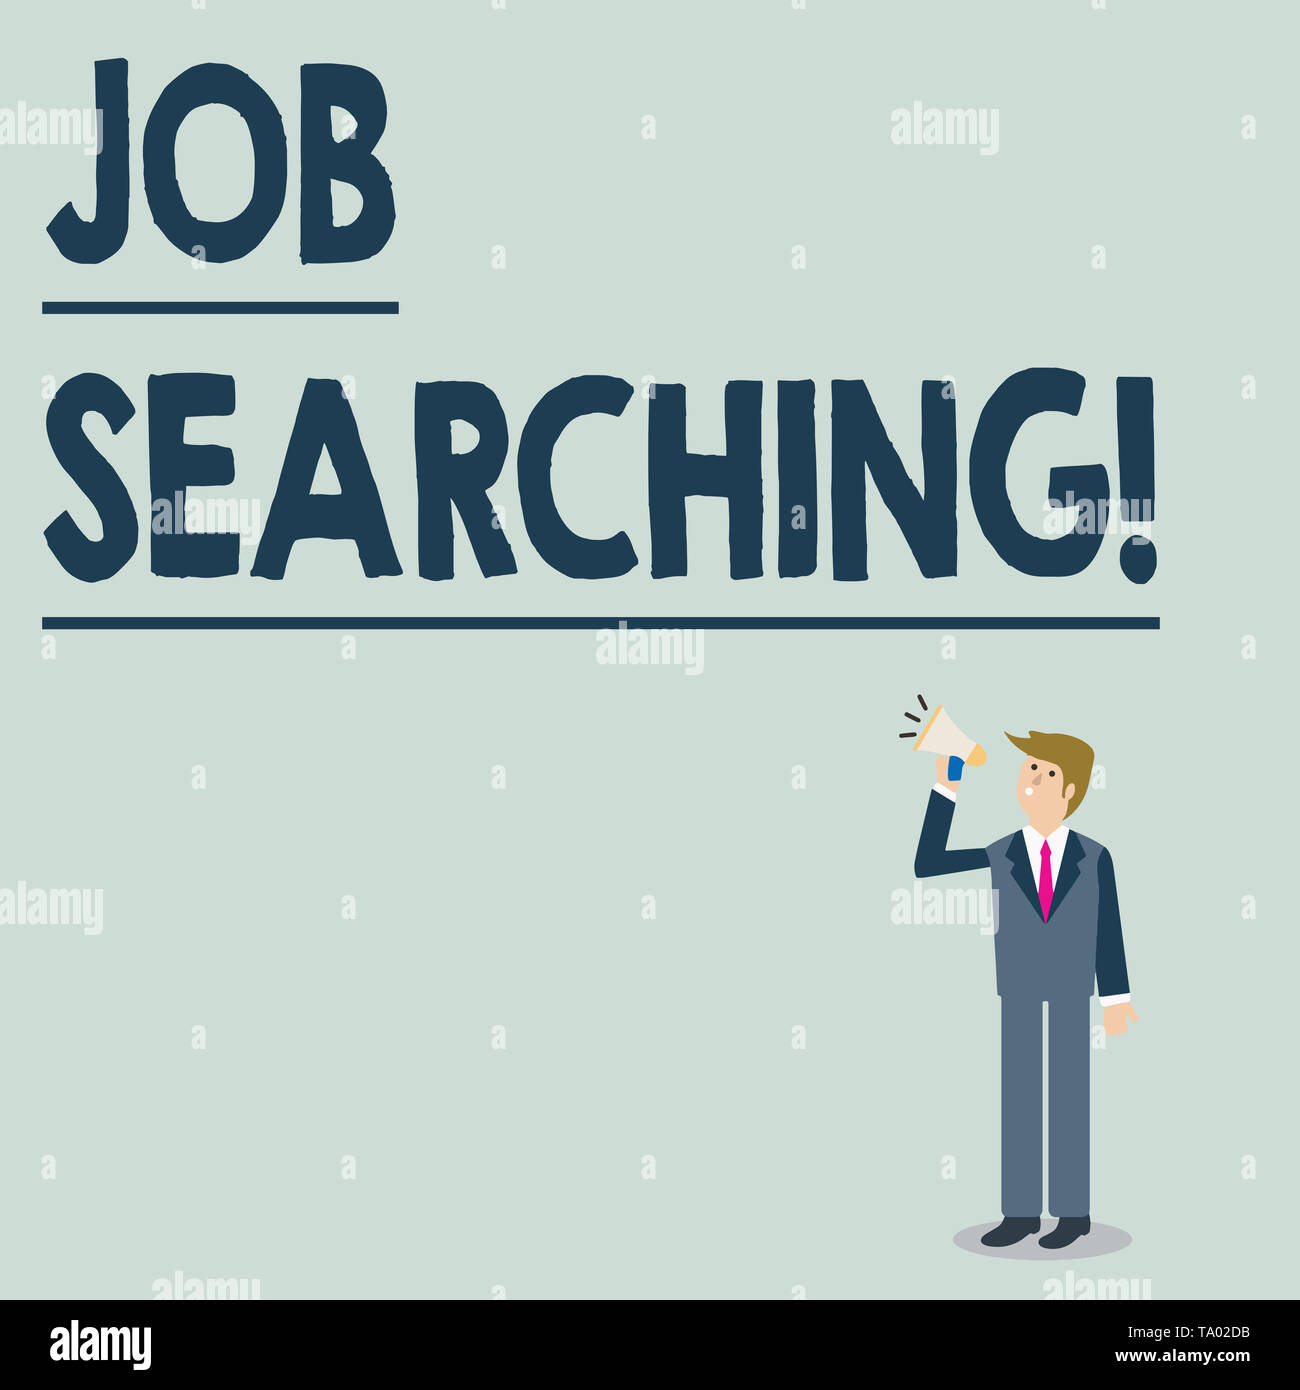 Job Searching High Resolution Stock Photography And Images Alamy